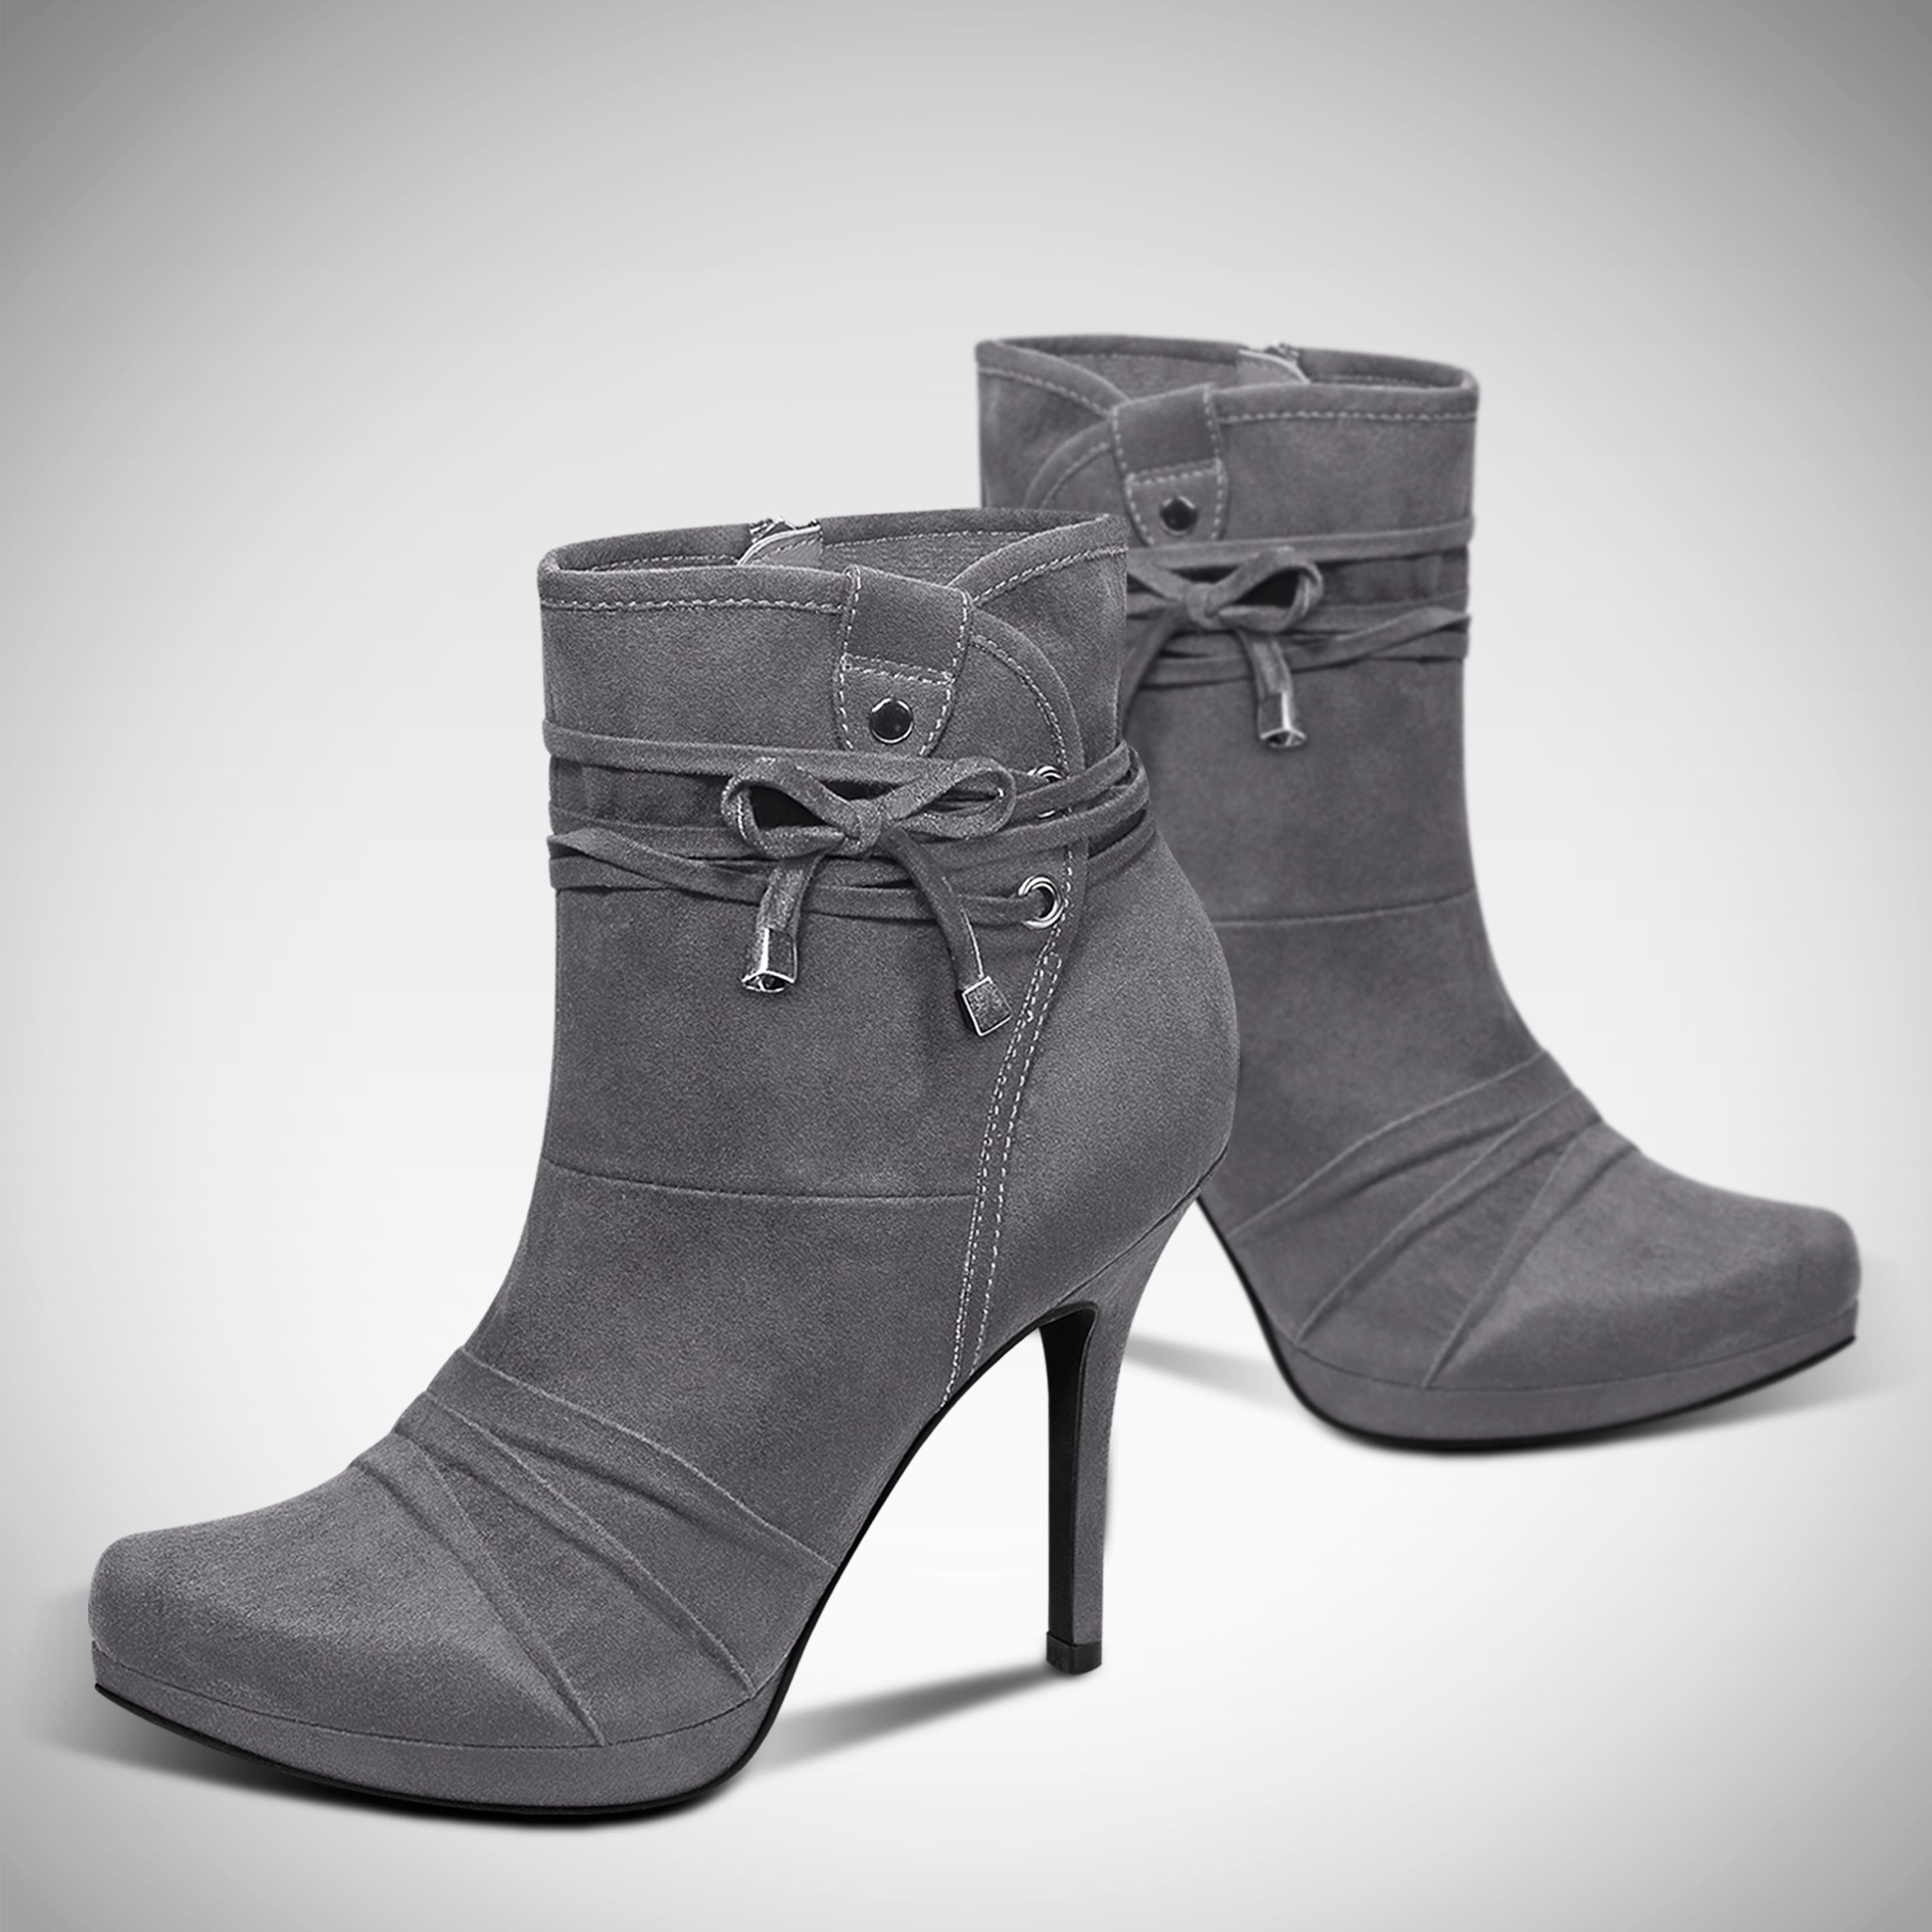 cbeb38fa4 Pin de Mary en Shoes and boots